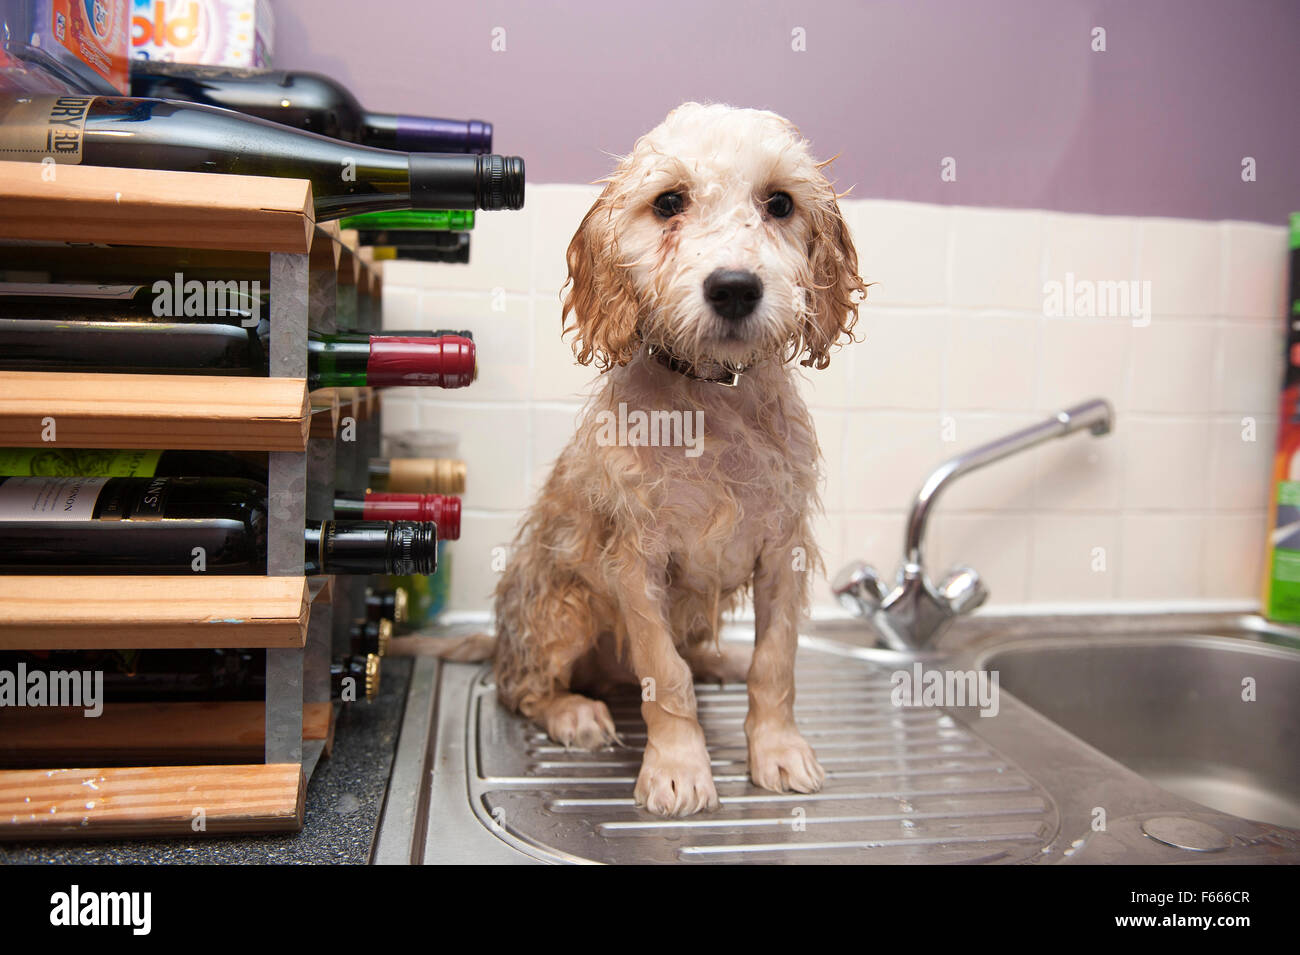 A forlorn and bedraggled looking dog after being washed in a stainless steel sink. Stock Photo